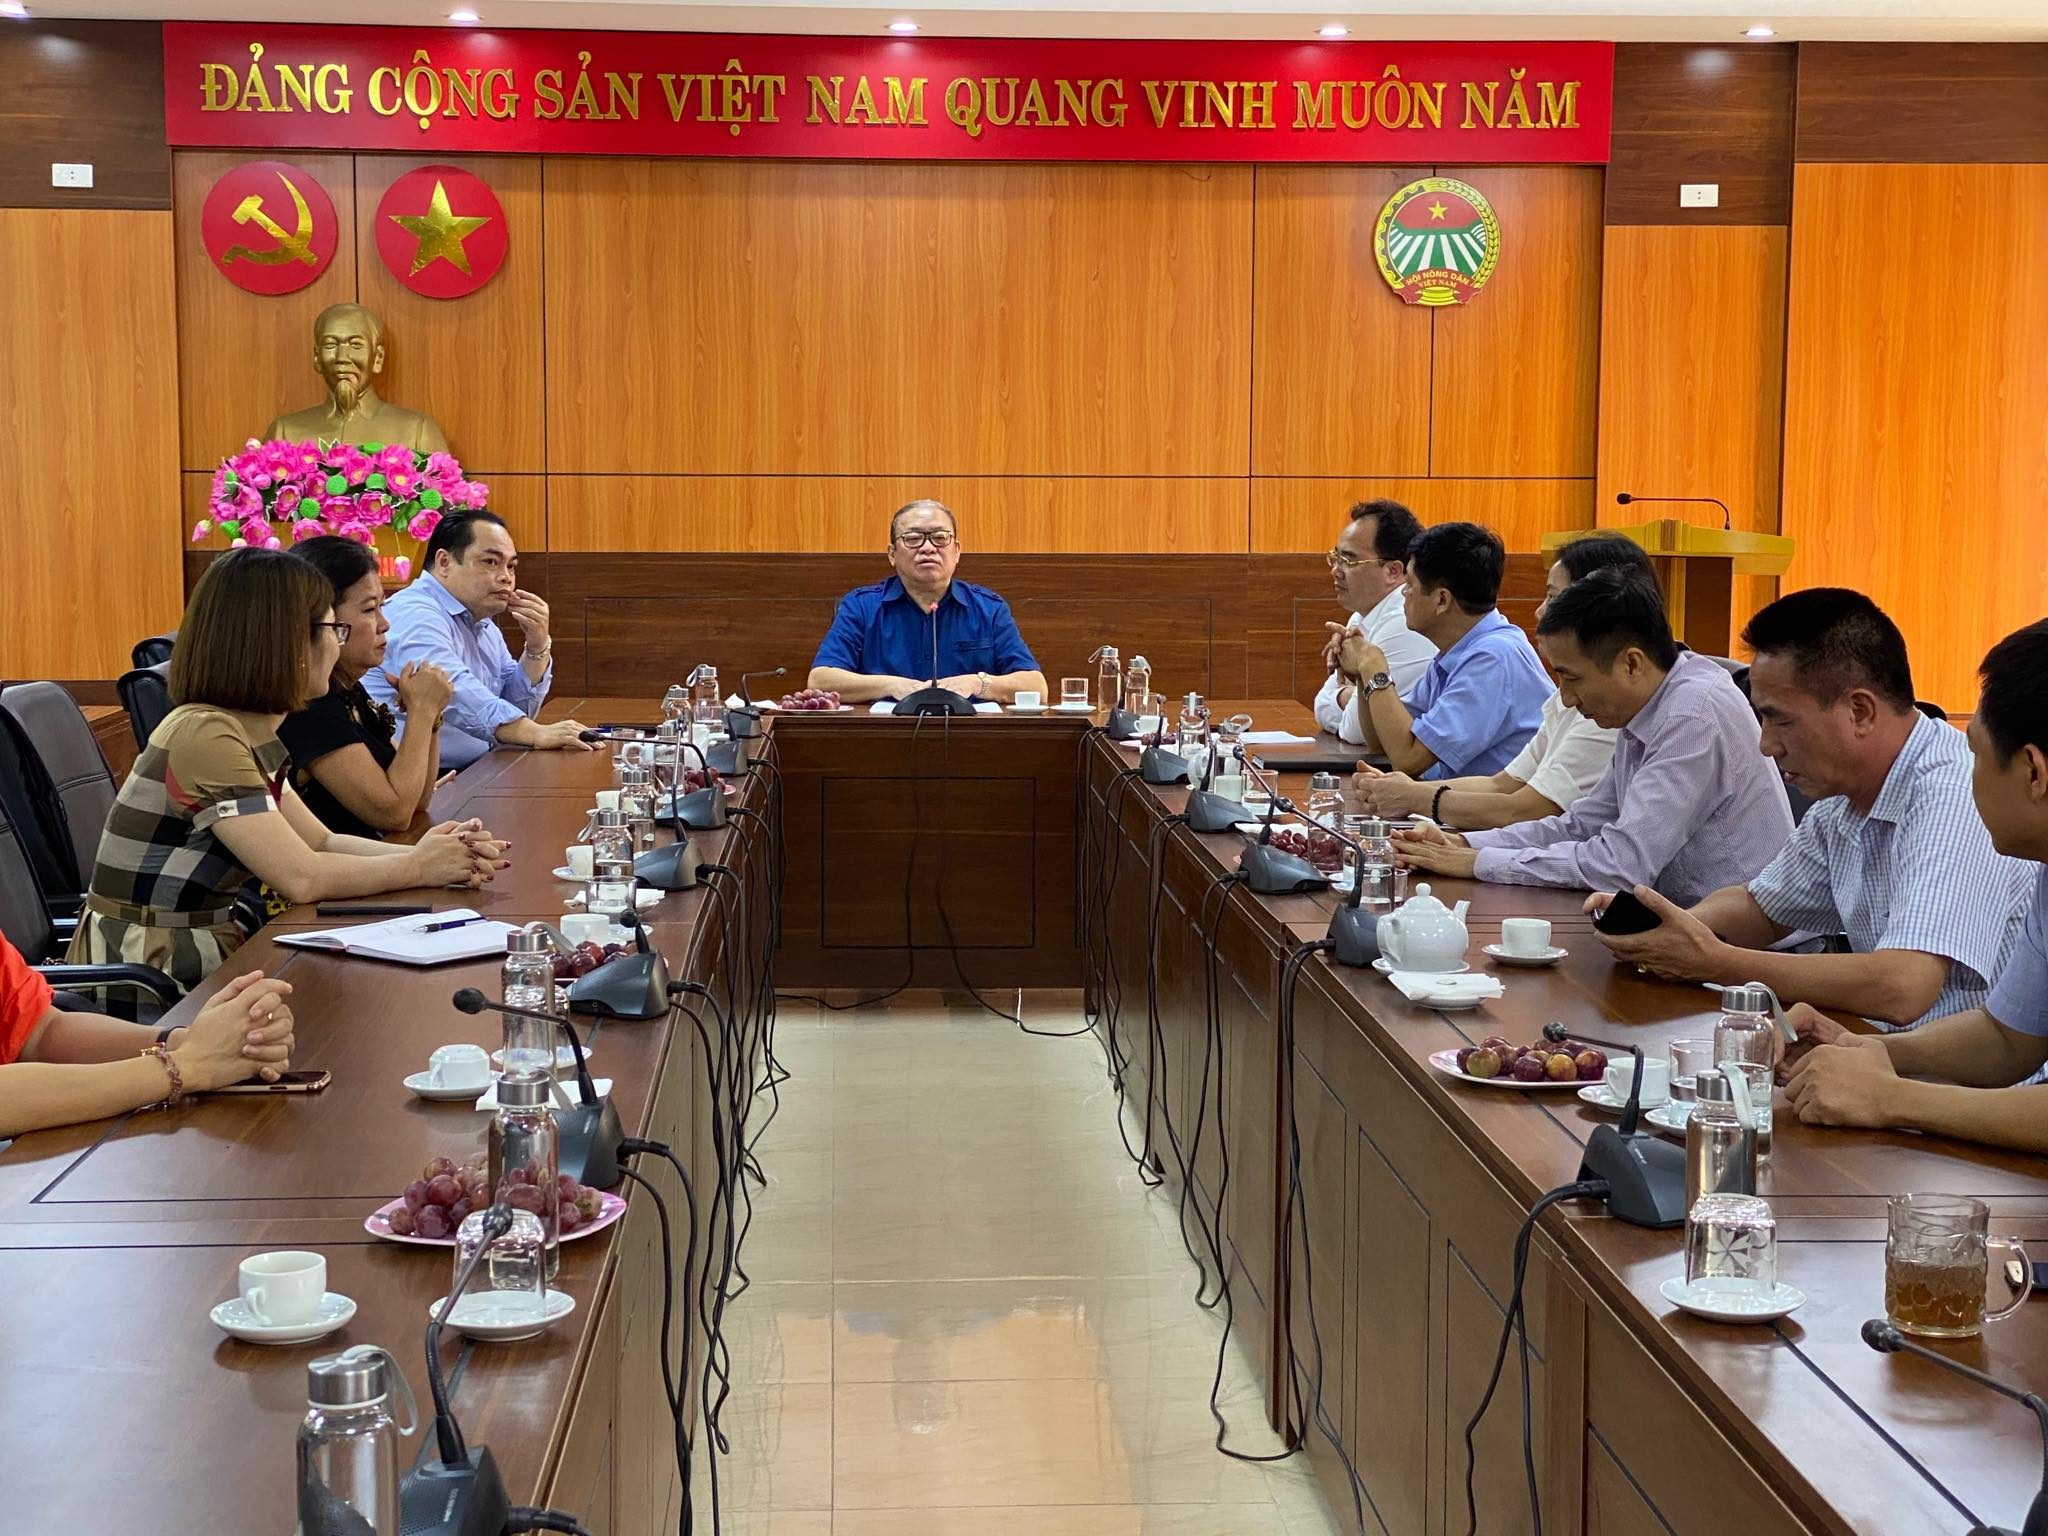 VNFU Chairman Thao Xuan Sung visited and worked with Yen Bai Farmers Union: Focusing on eco-tourism development